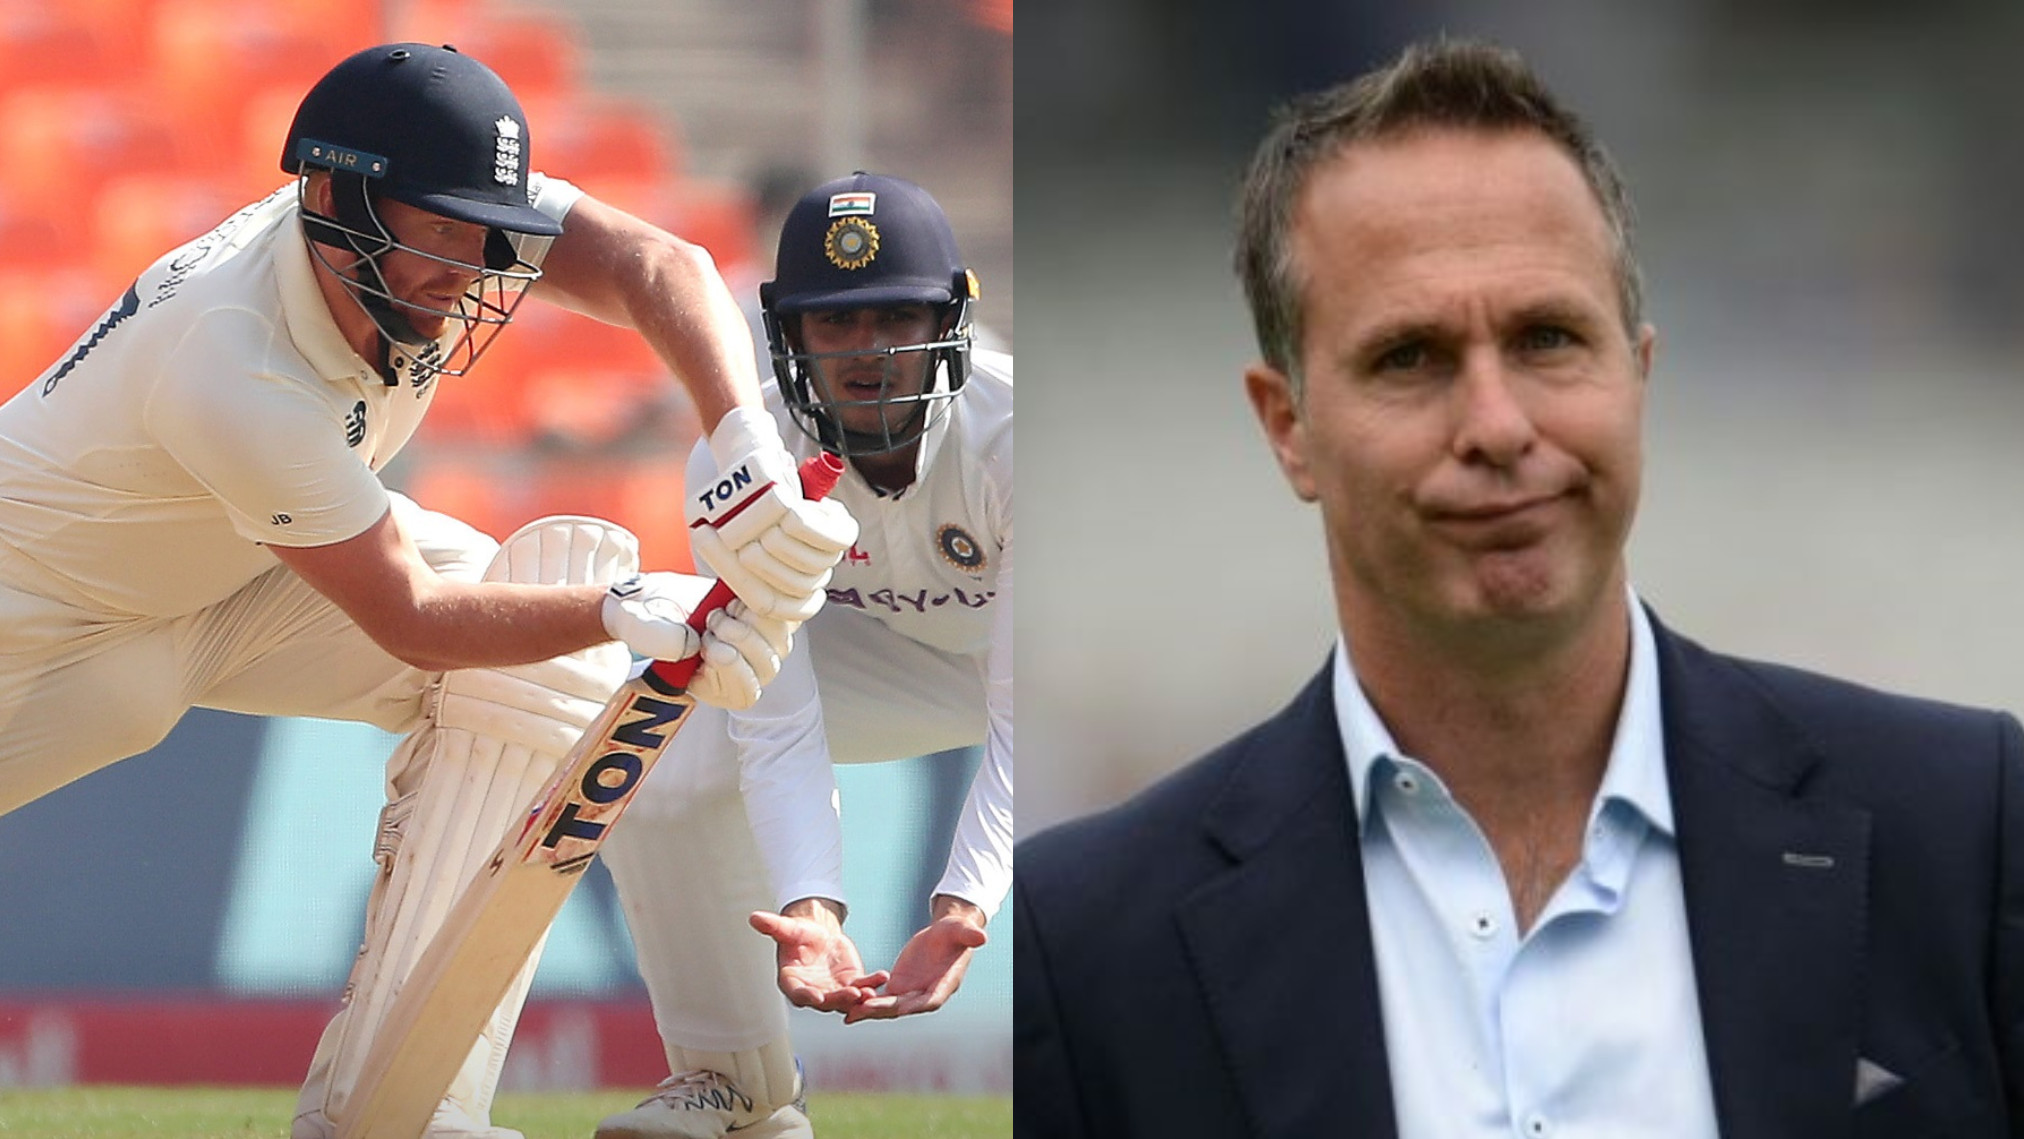 """IND v ENG 2021: """"Terrible batting display on a perfect pitch to get runs,"""" Vaughan rips into England batsmen"""